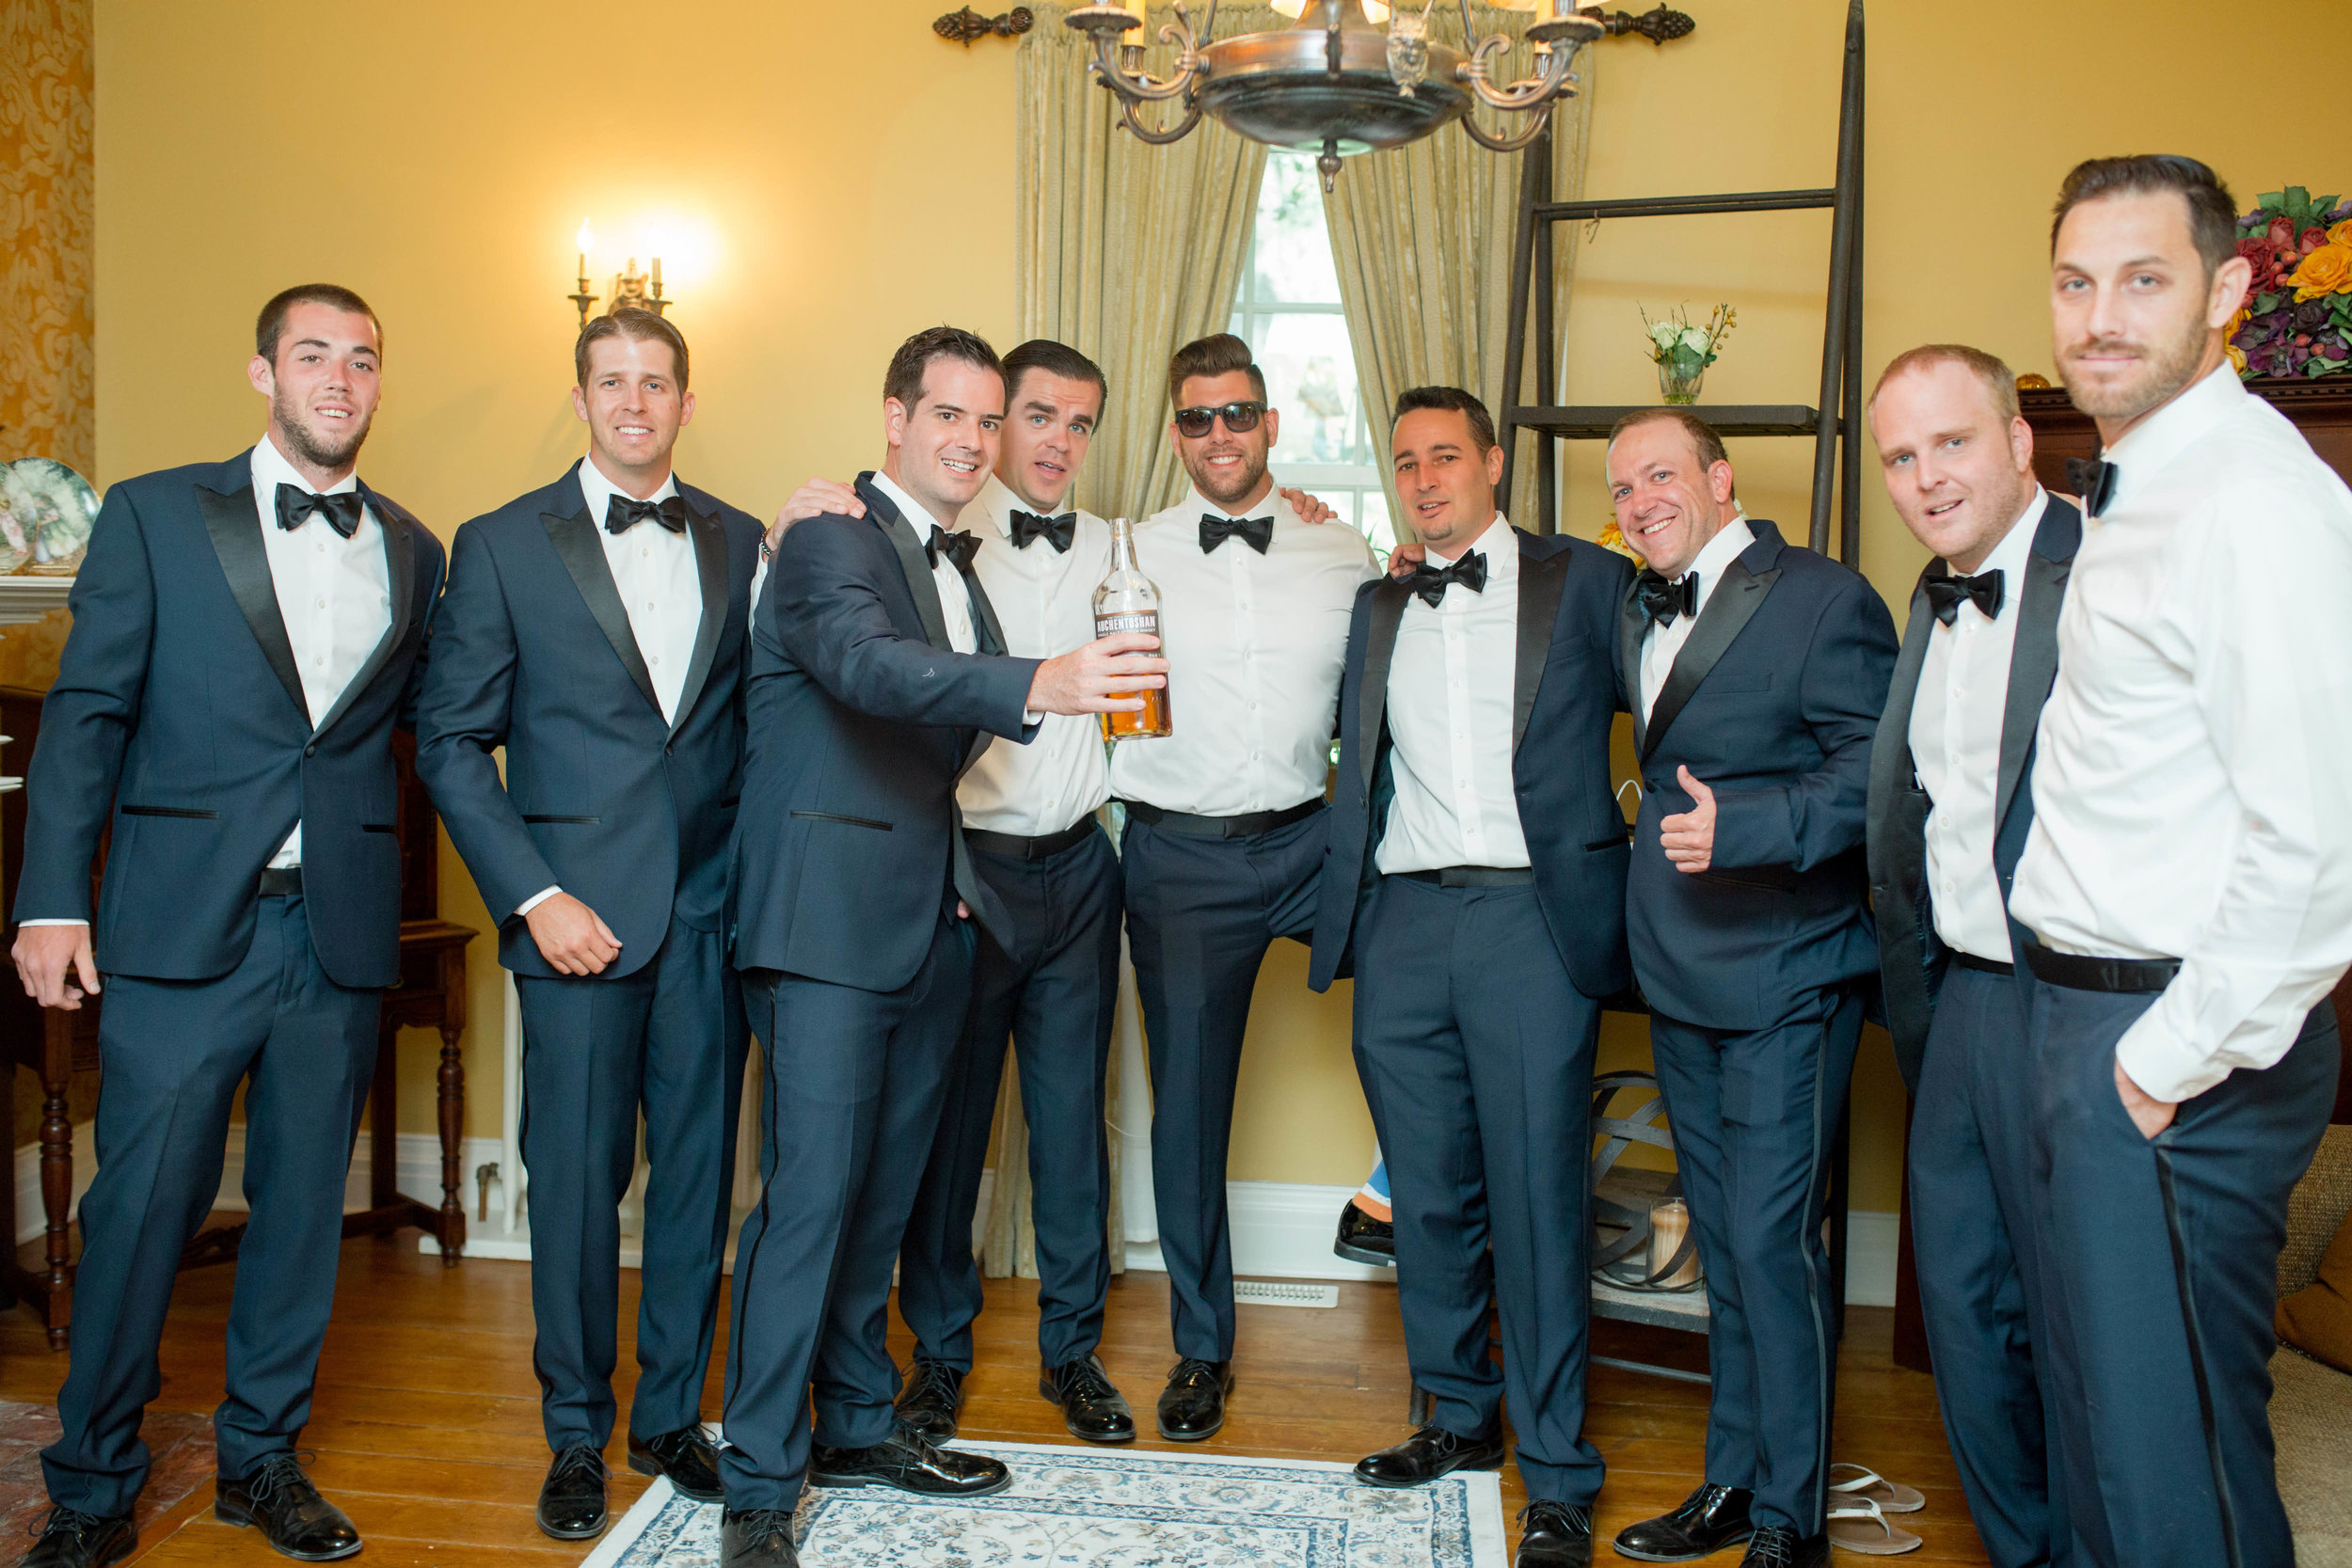 Ashley___Zac___Daniel_Ricci_Weddings___High_Res._Finals_68.jpg